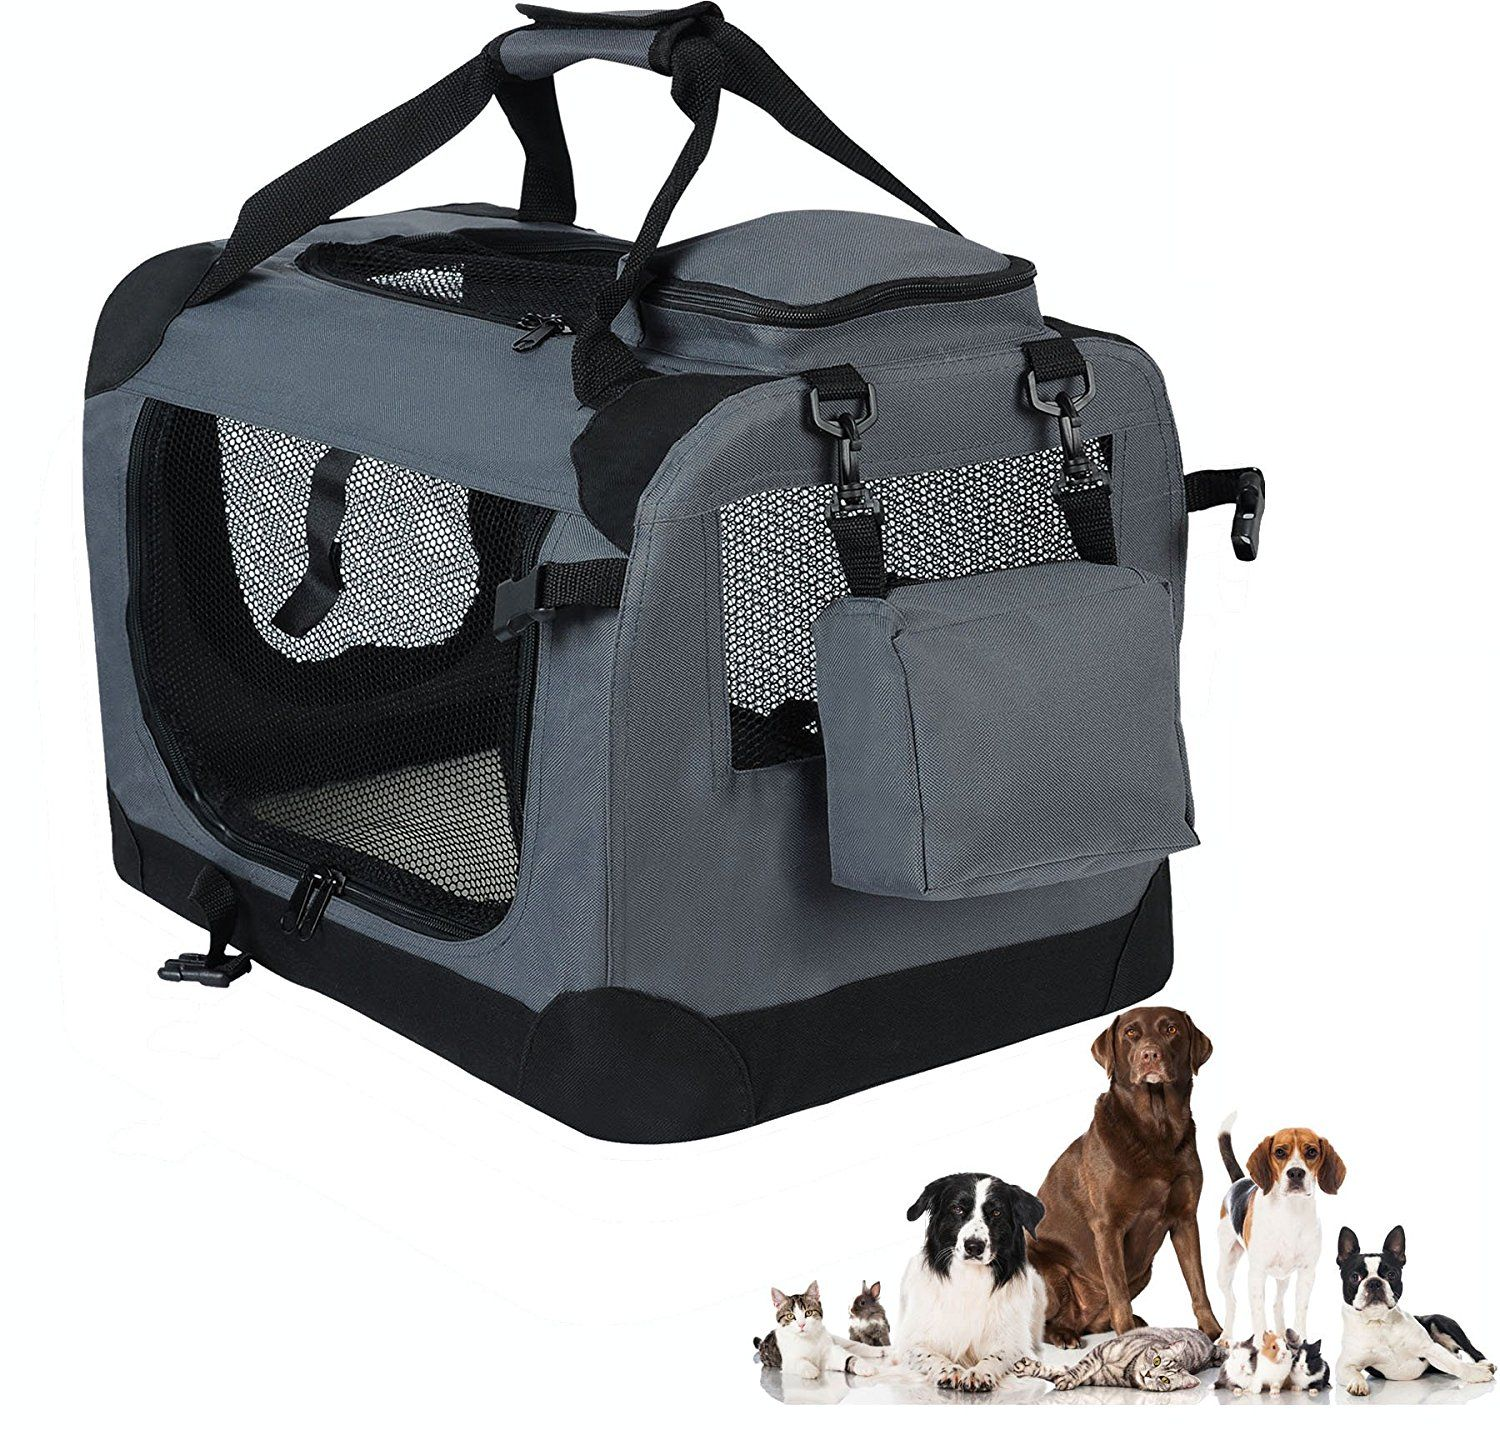 Woltu Folding Pet Carrier Soft Dog Crate Pet Home For Indoor Outdoor Use Multiple Colors And Sizes Available With Images Soft Dog Crates Soft Pet Carrier Folding Dog Crate